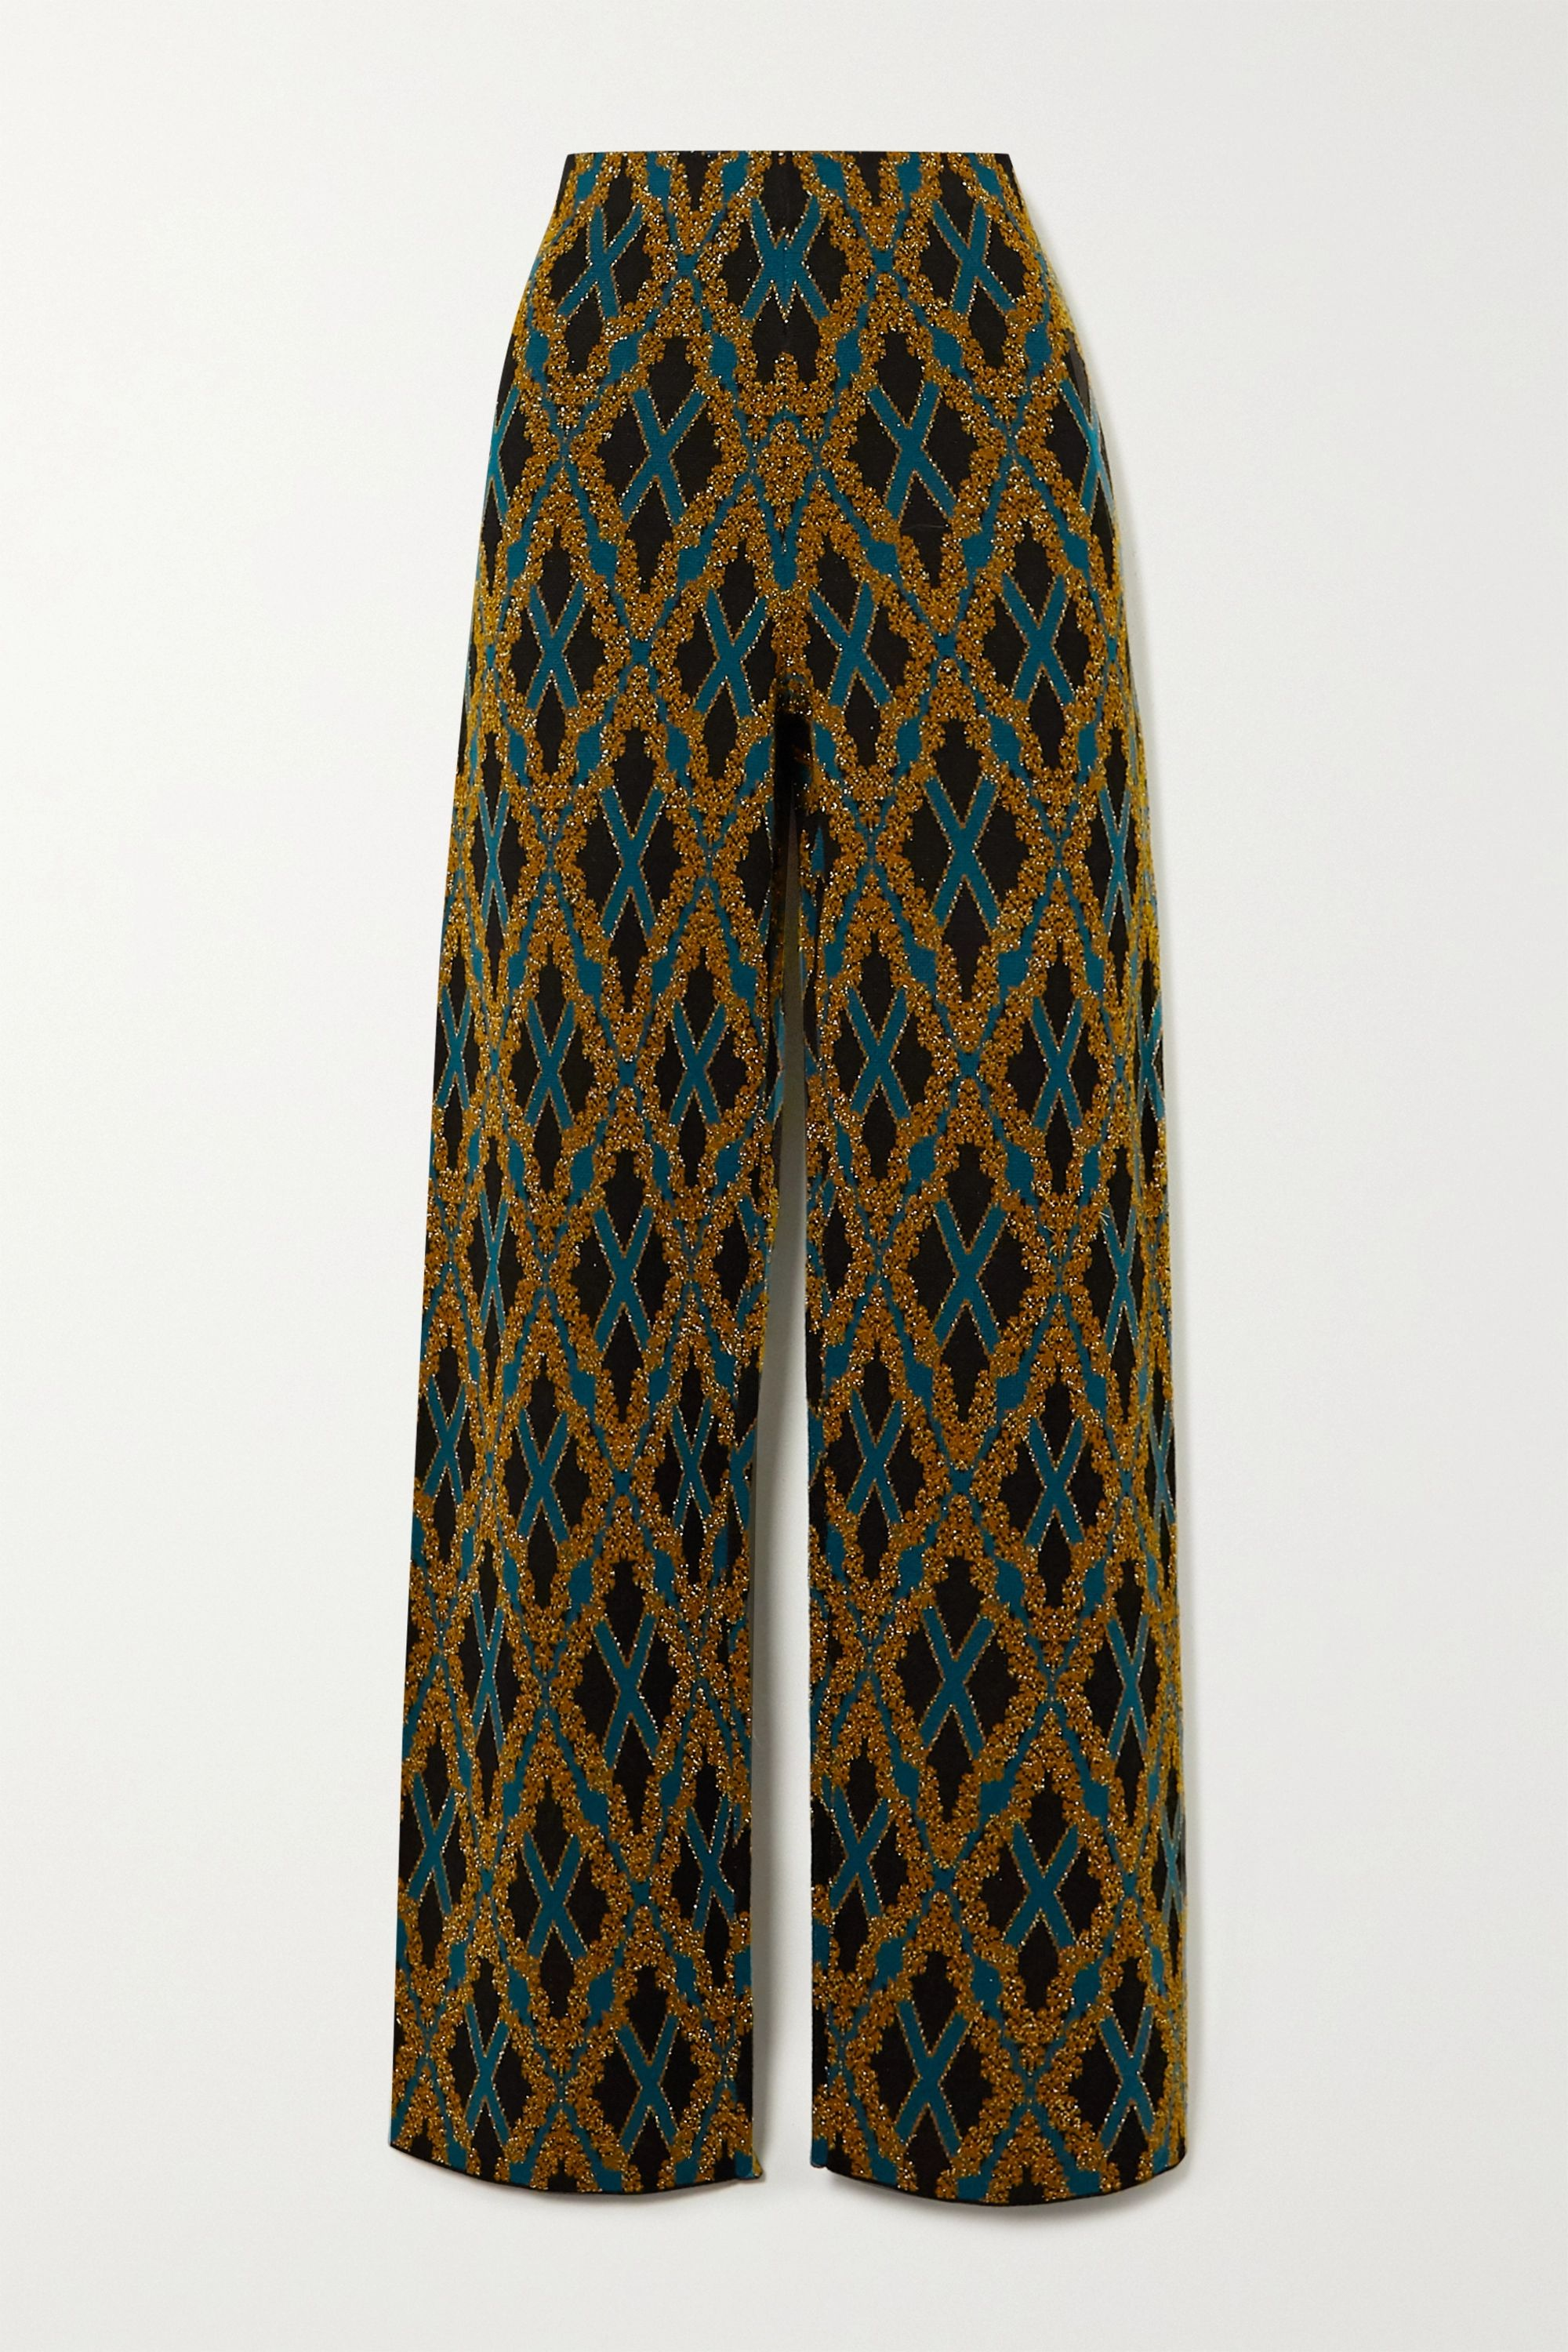 Dries Van Noten Metallic argyle merino wool-blend straight-leg pants